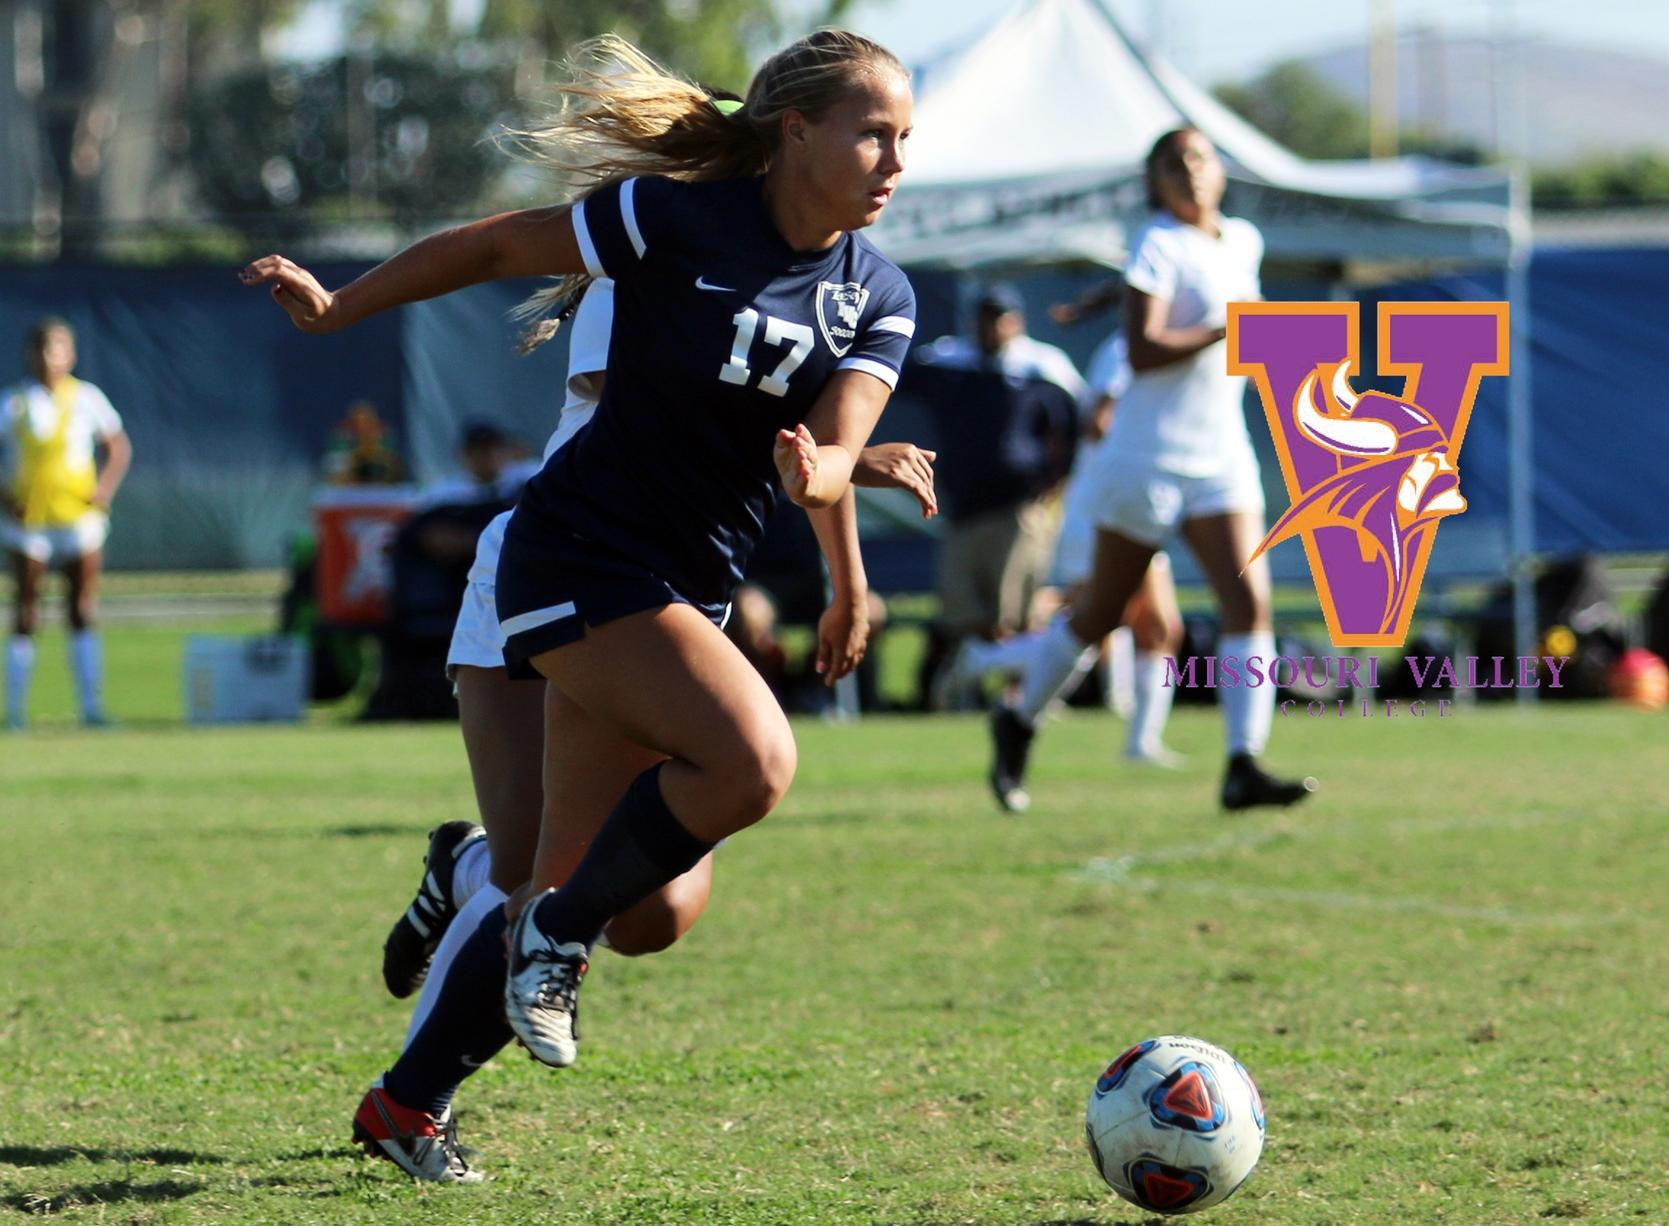 Soccer player Payton Purcell headed to Missouri Valley